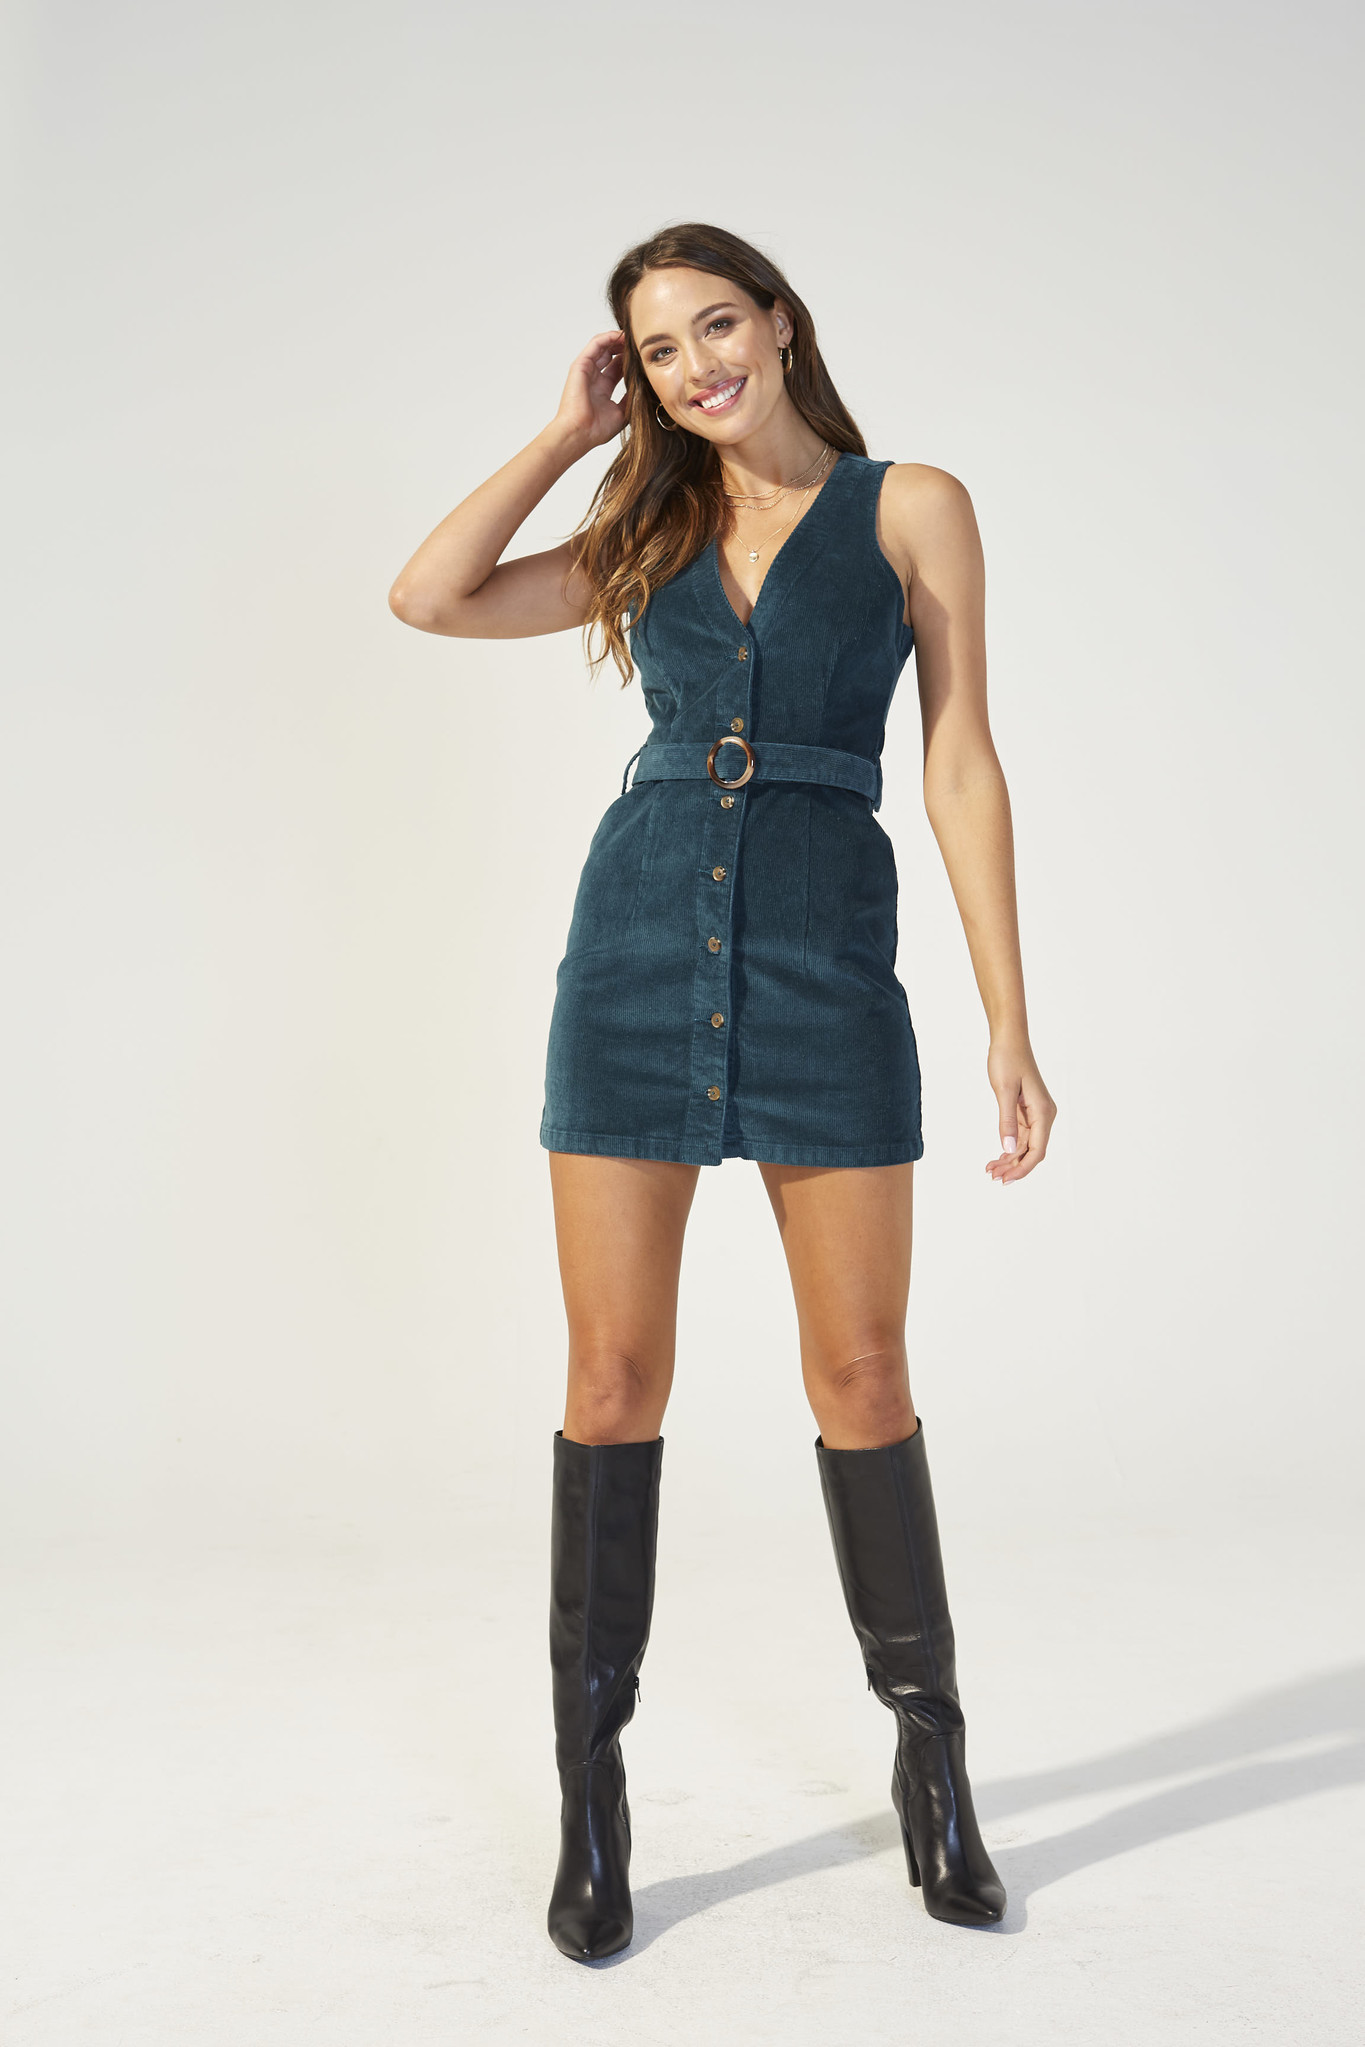 Mink Pink Get To Know You Cord Dress